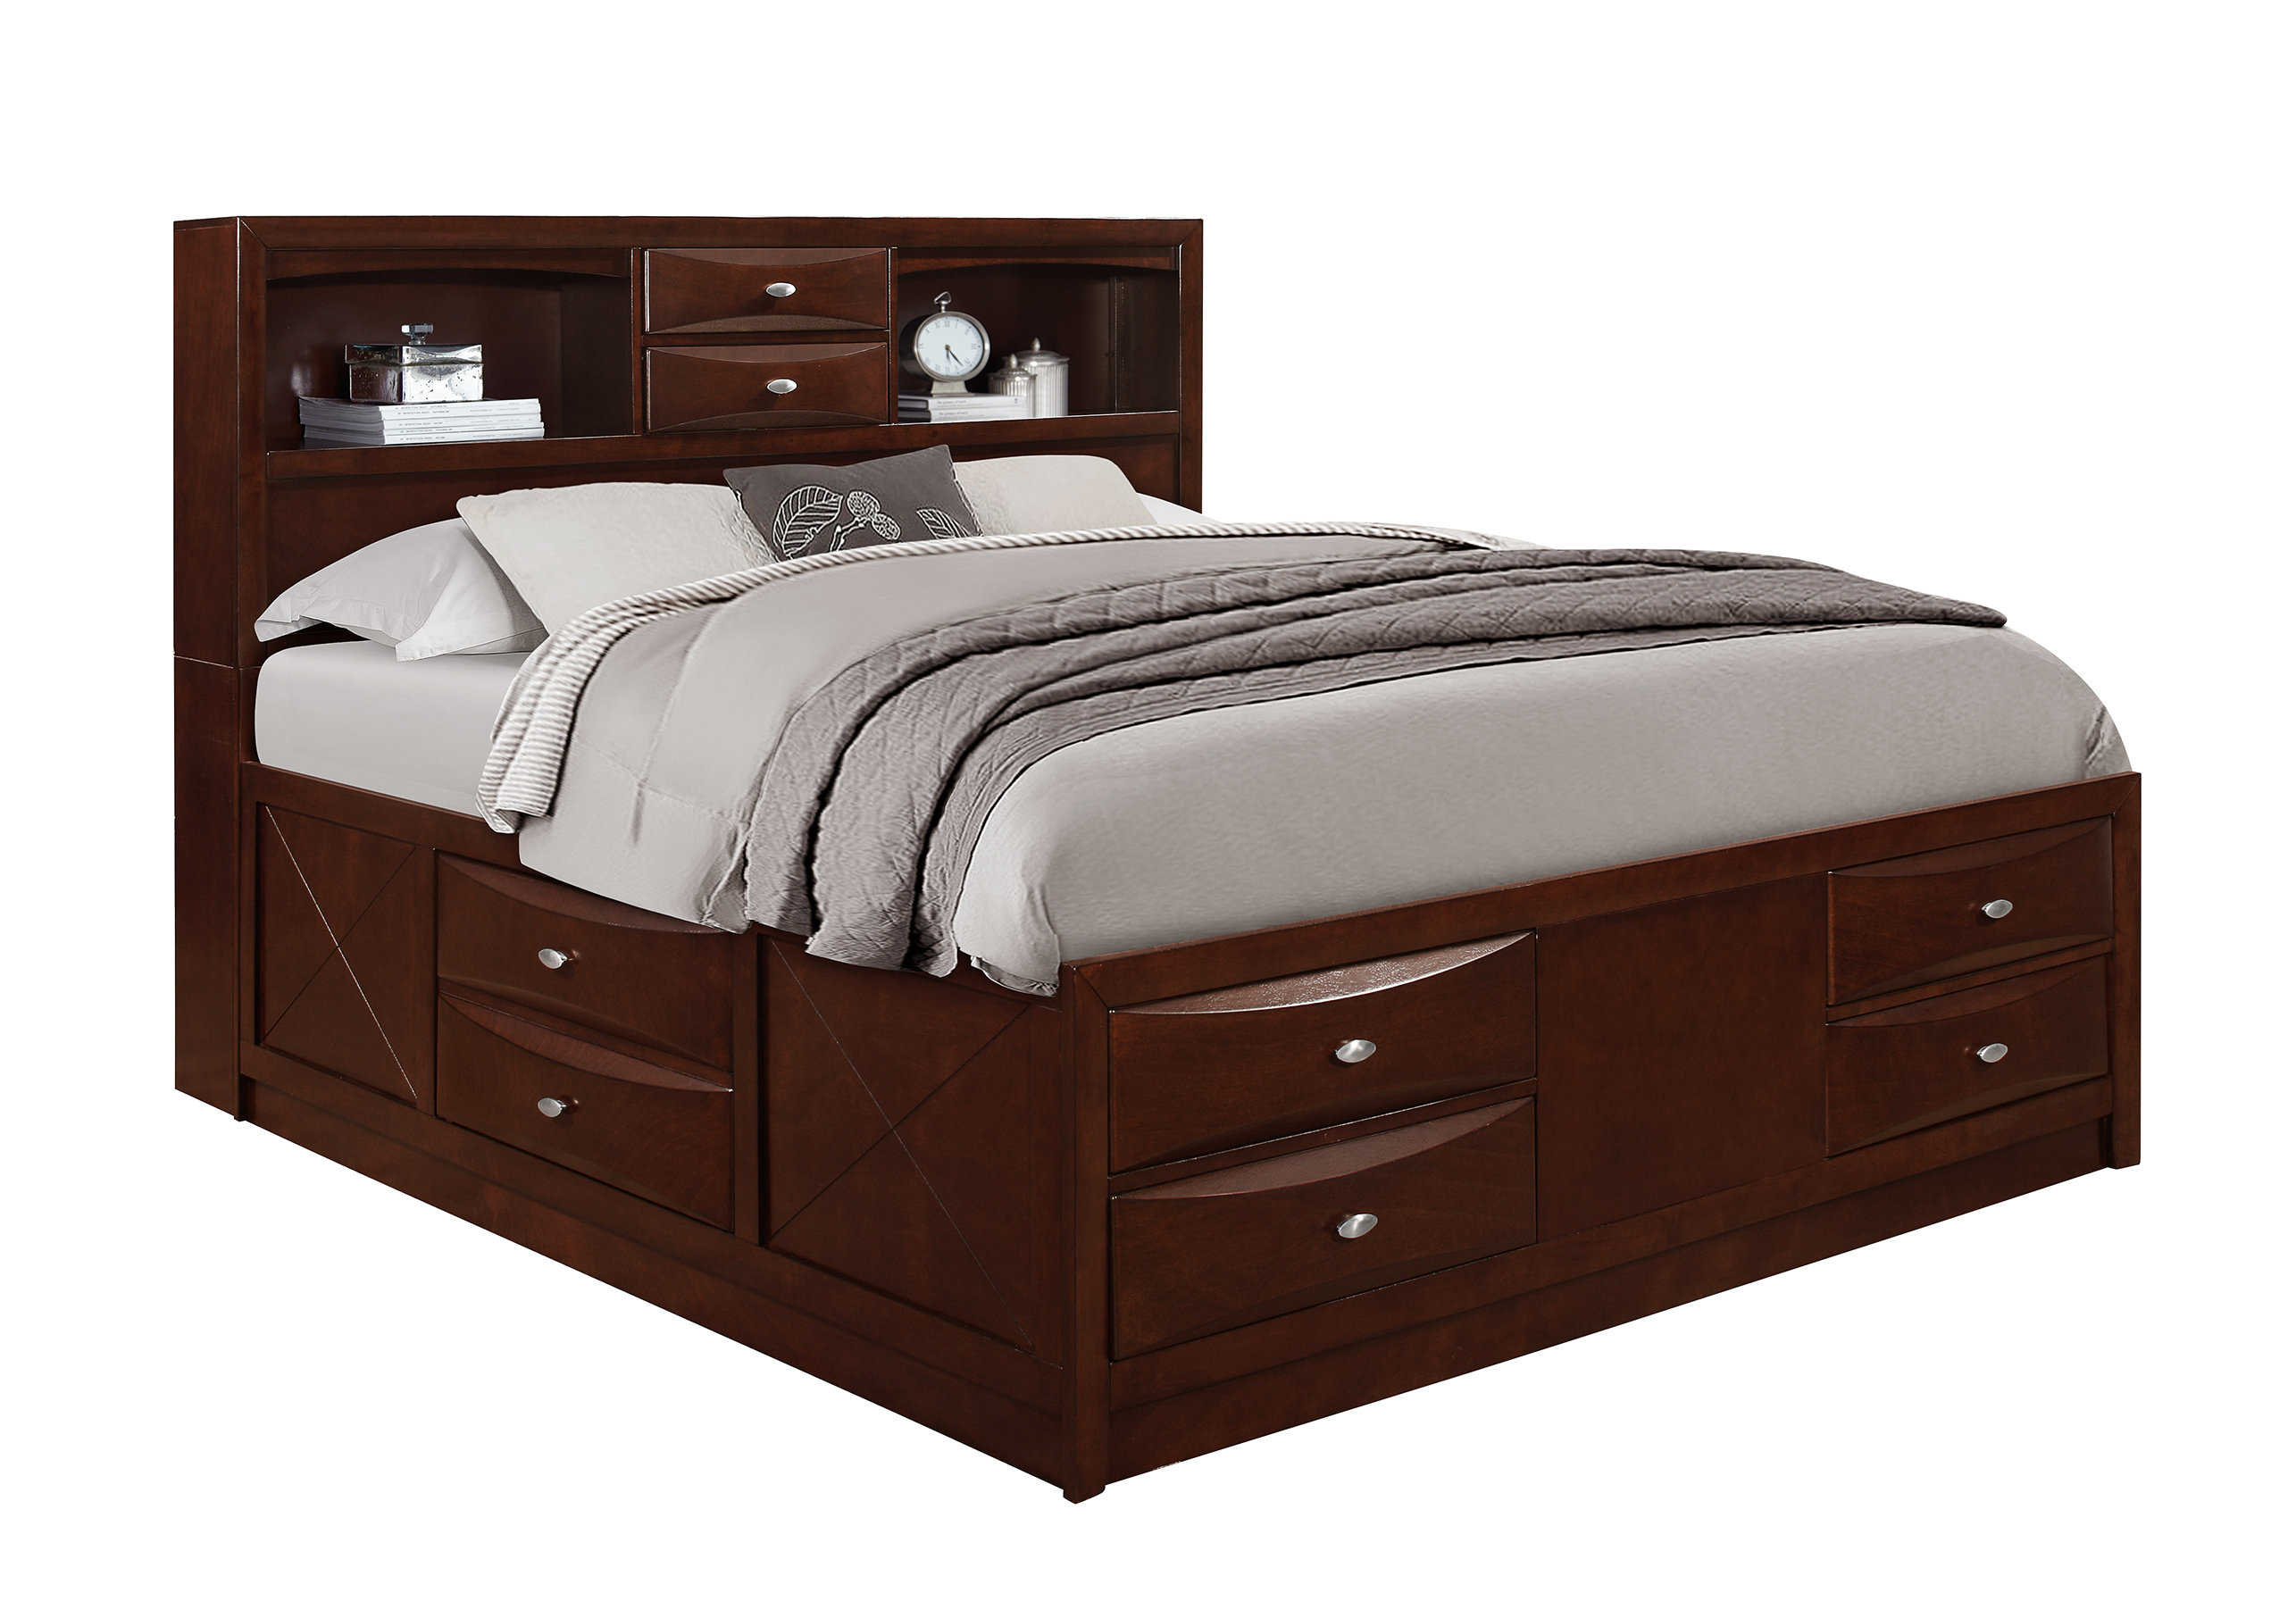 Bed with storage space save GBGIACK